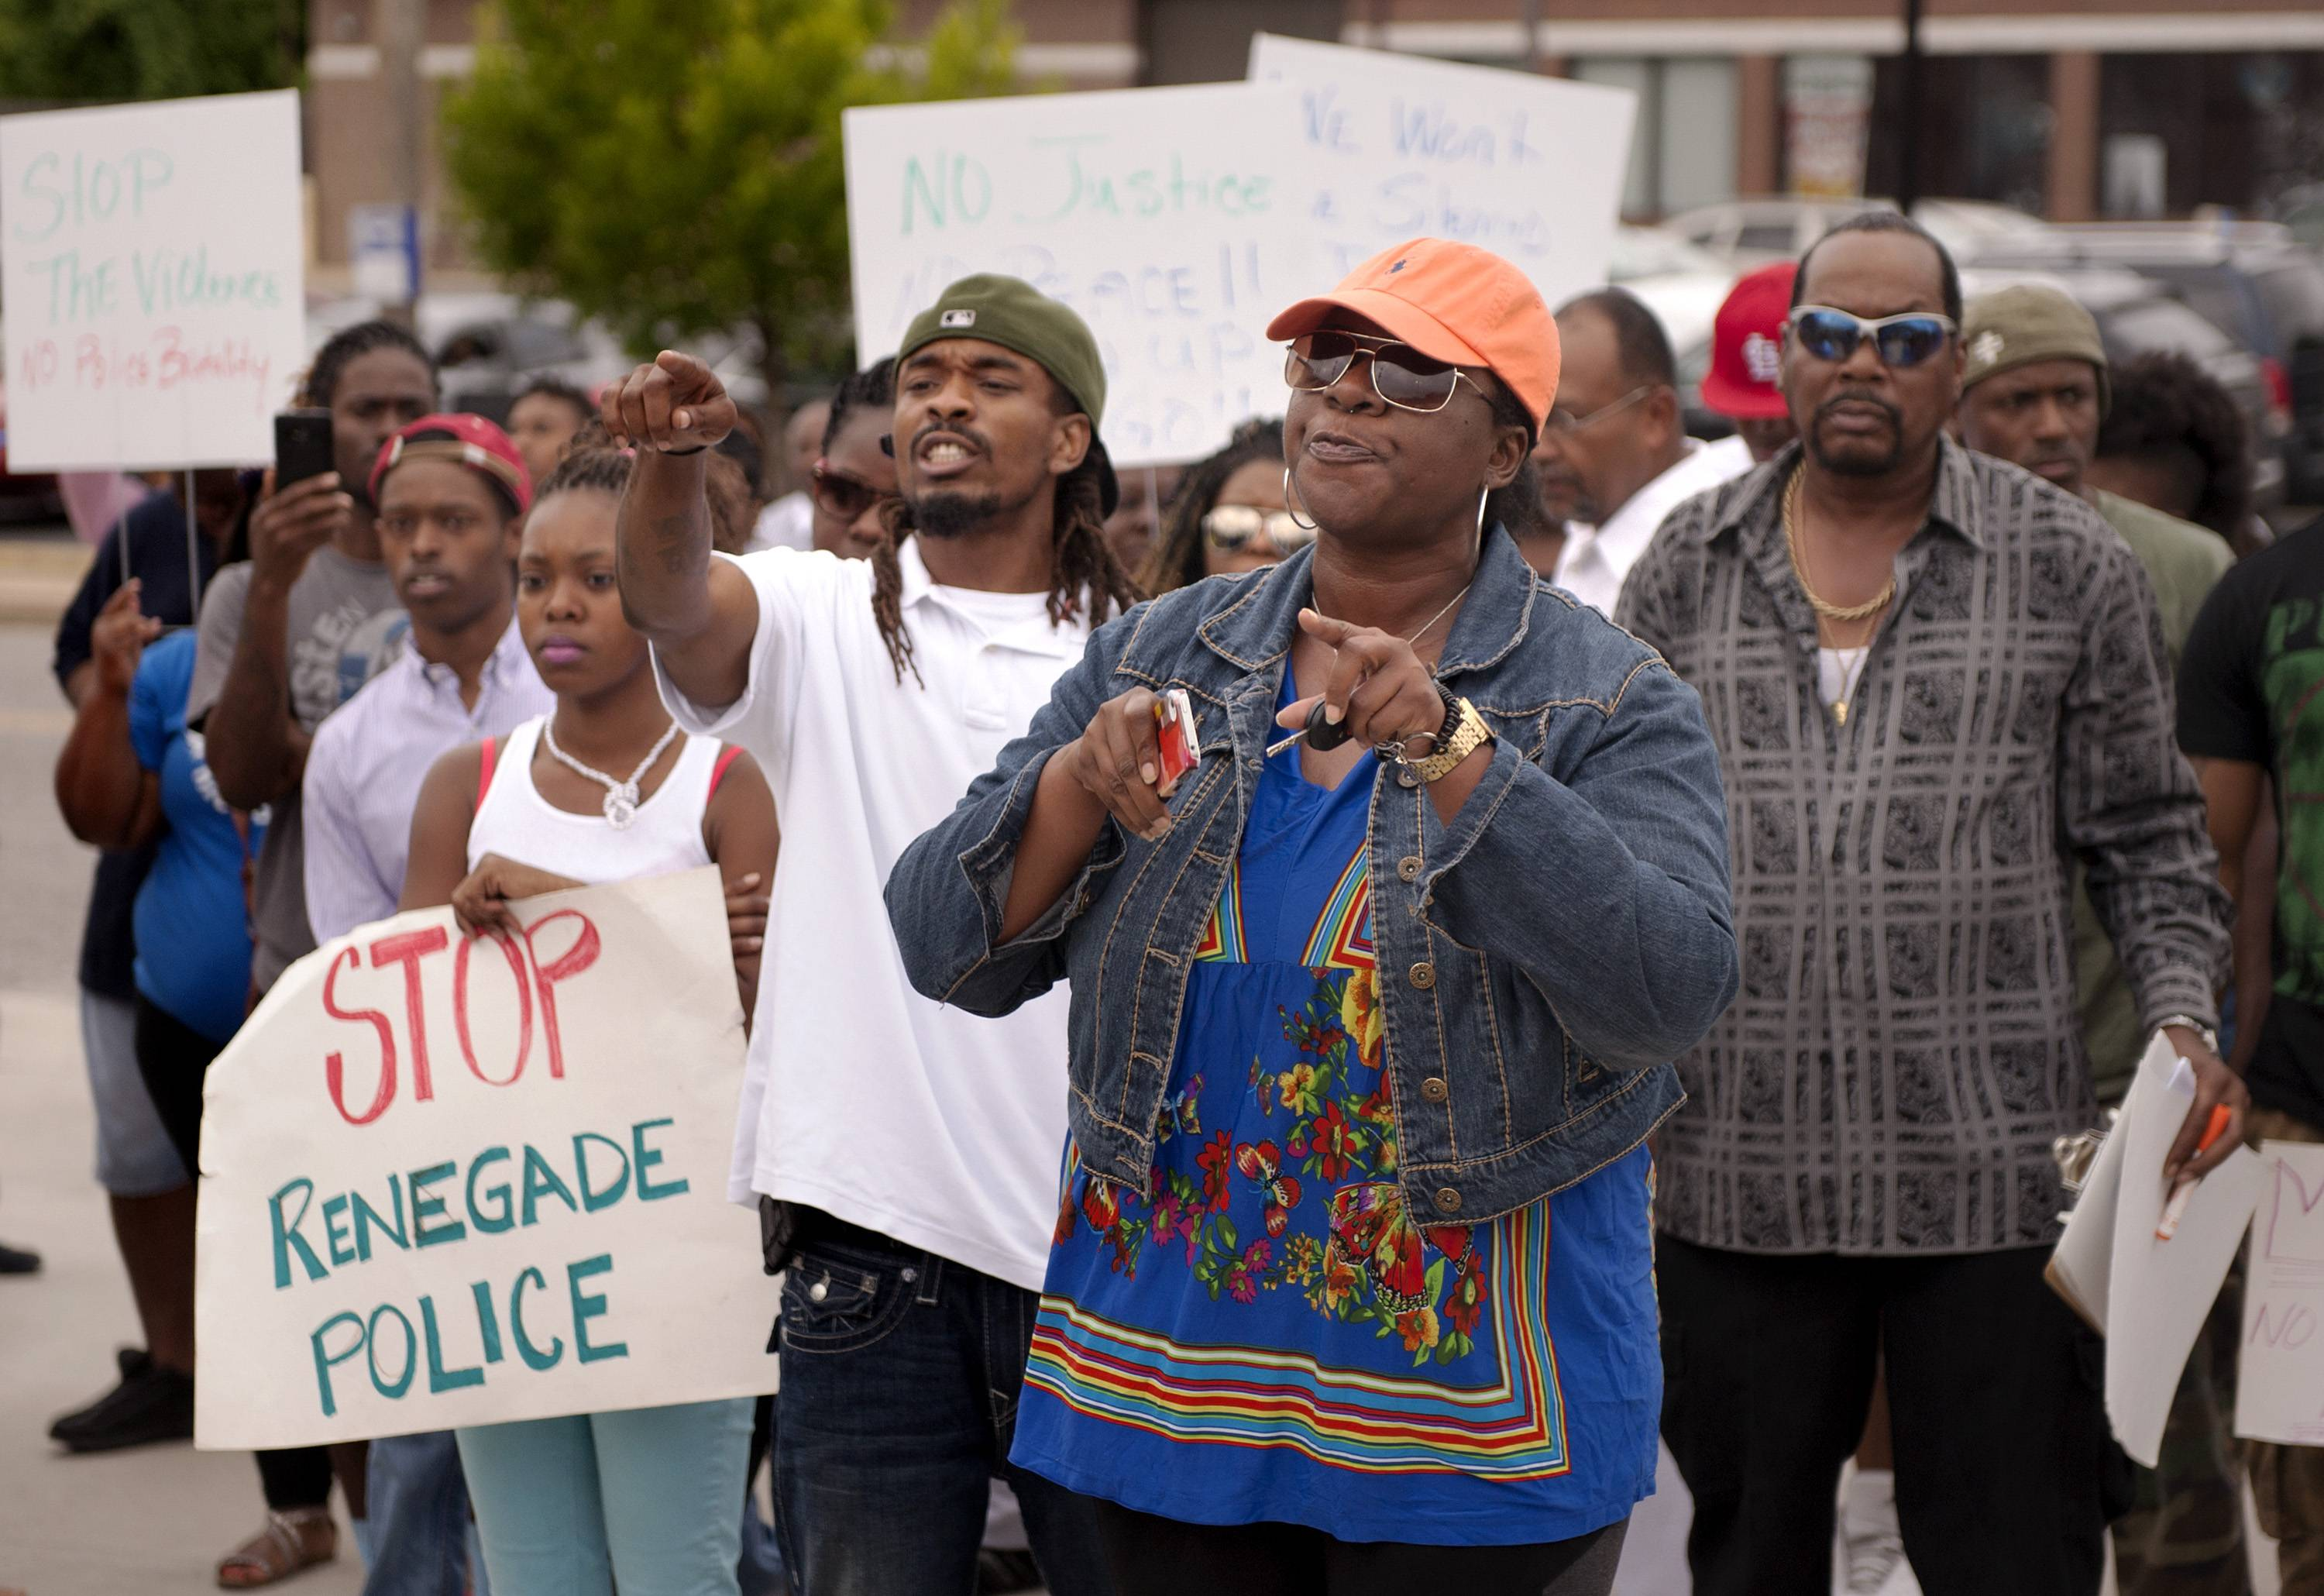 Protestors confront police during an impromptu rally Sunday to protest the shooting of Michael Brown, 18, by police in Ferguson, Mo., Saturday.